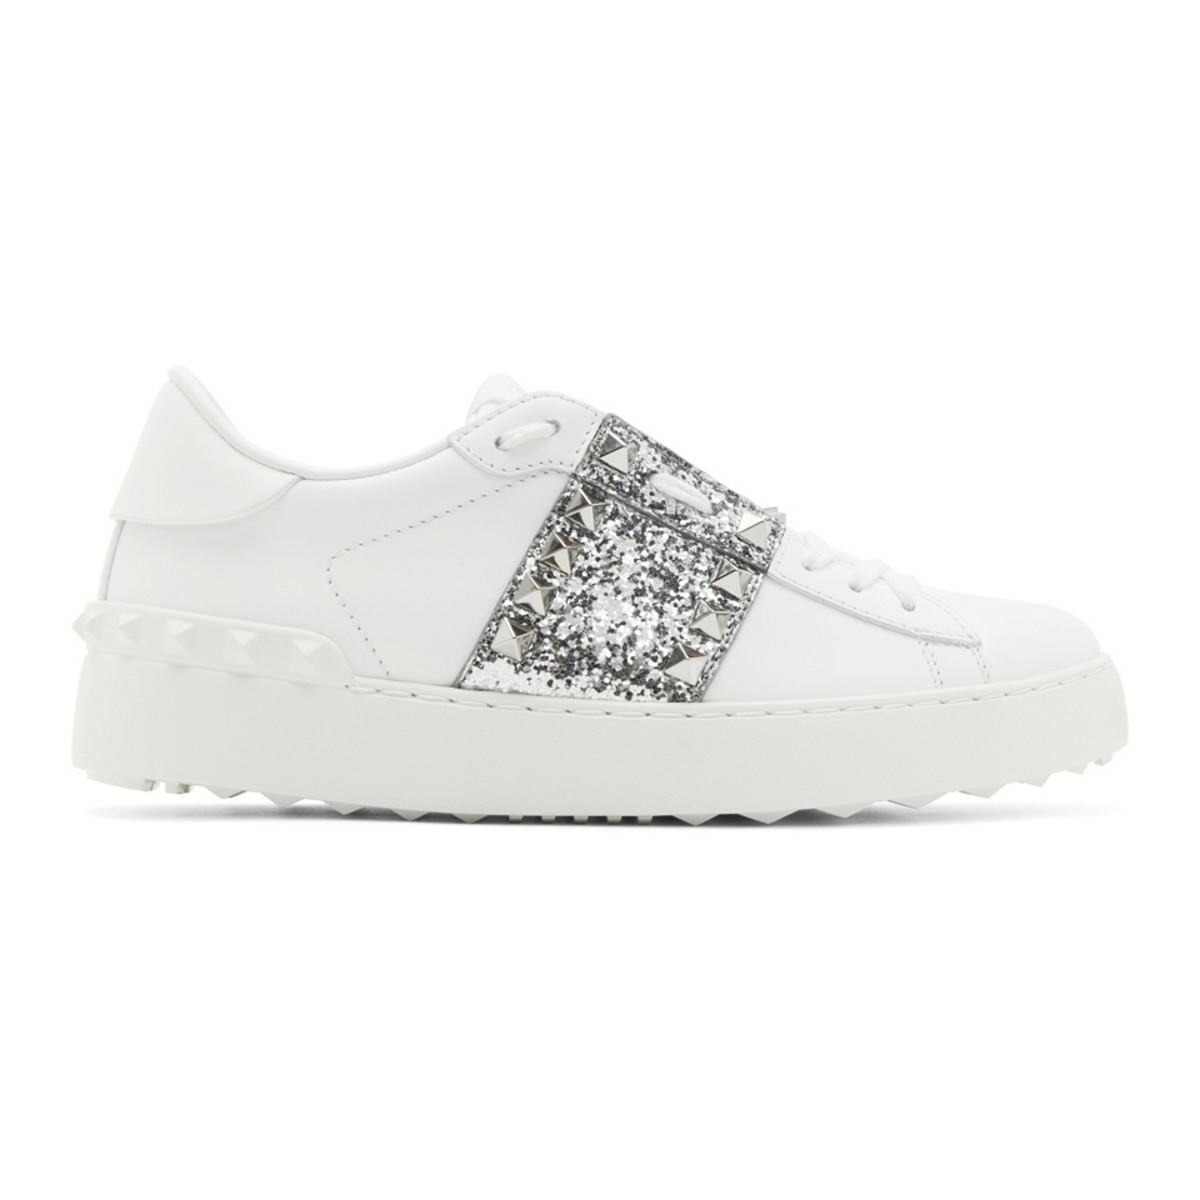 Women SHOES - GOOFASH - Womens SNEAKER